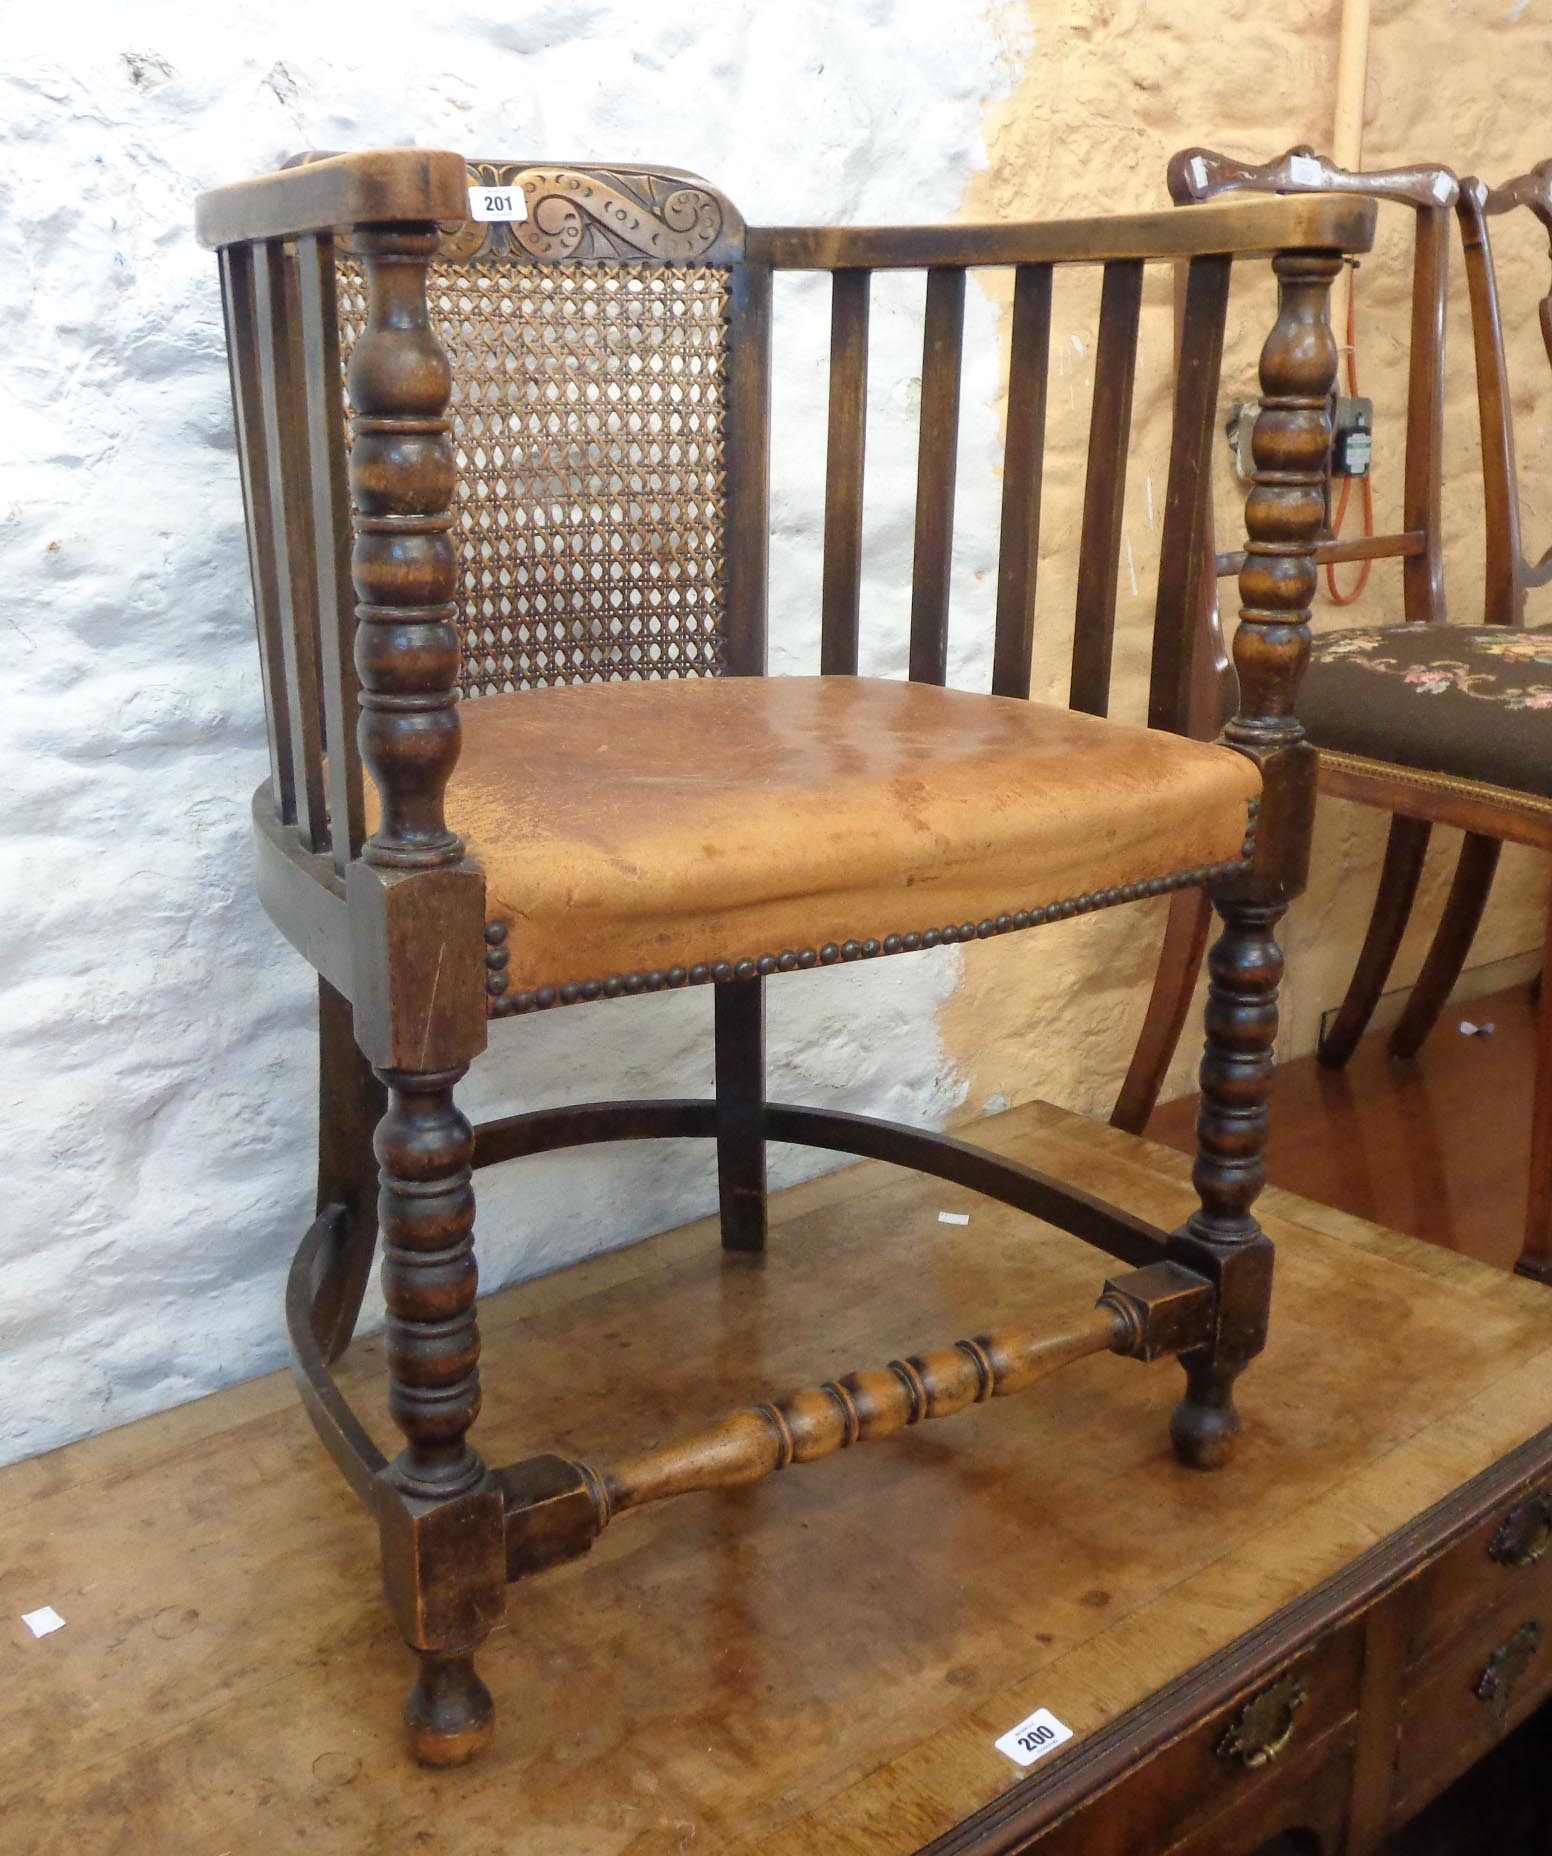 A 1920's oak framed tub elbow chair with remains of studded leather upholstery, set on bobbin turned